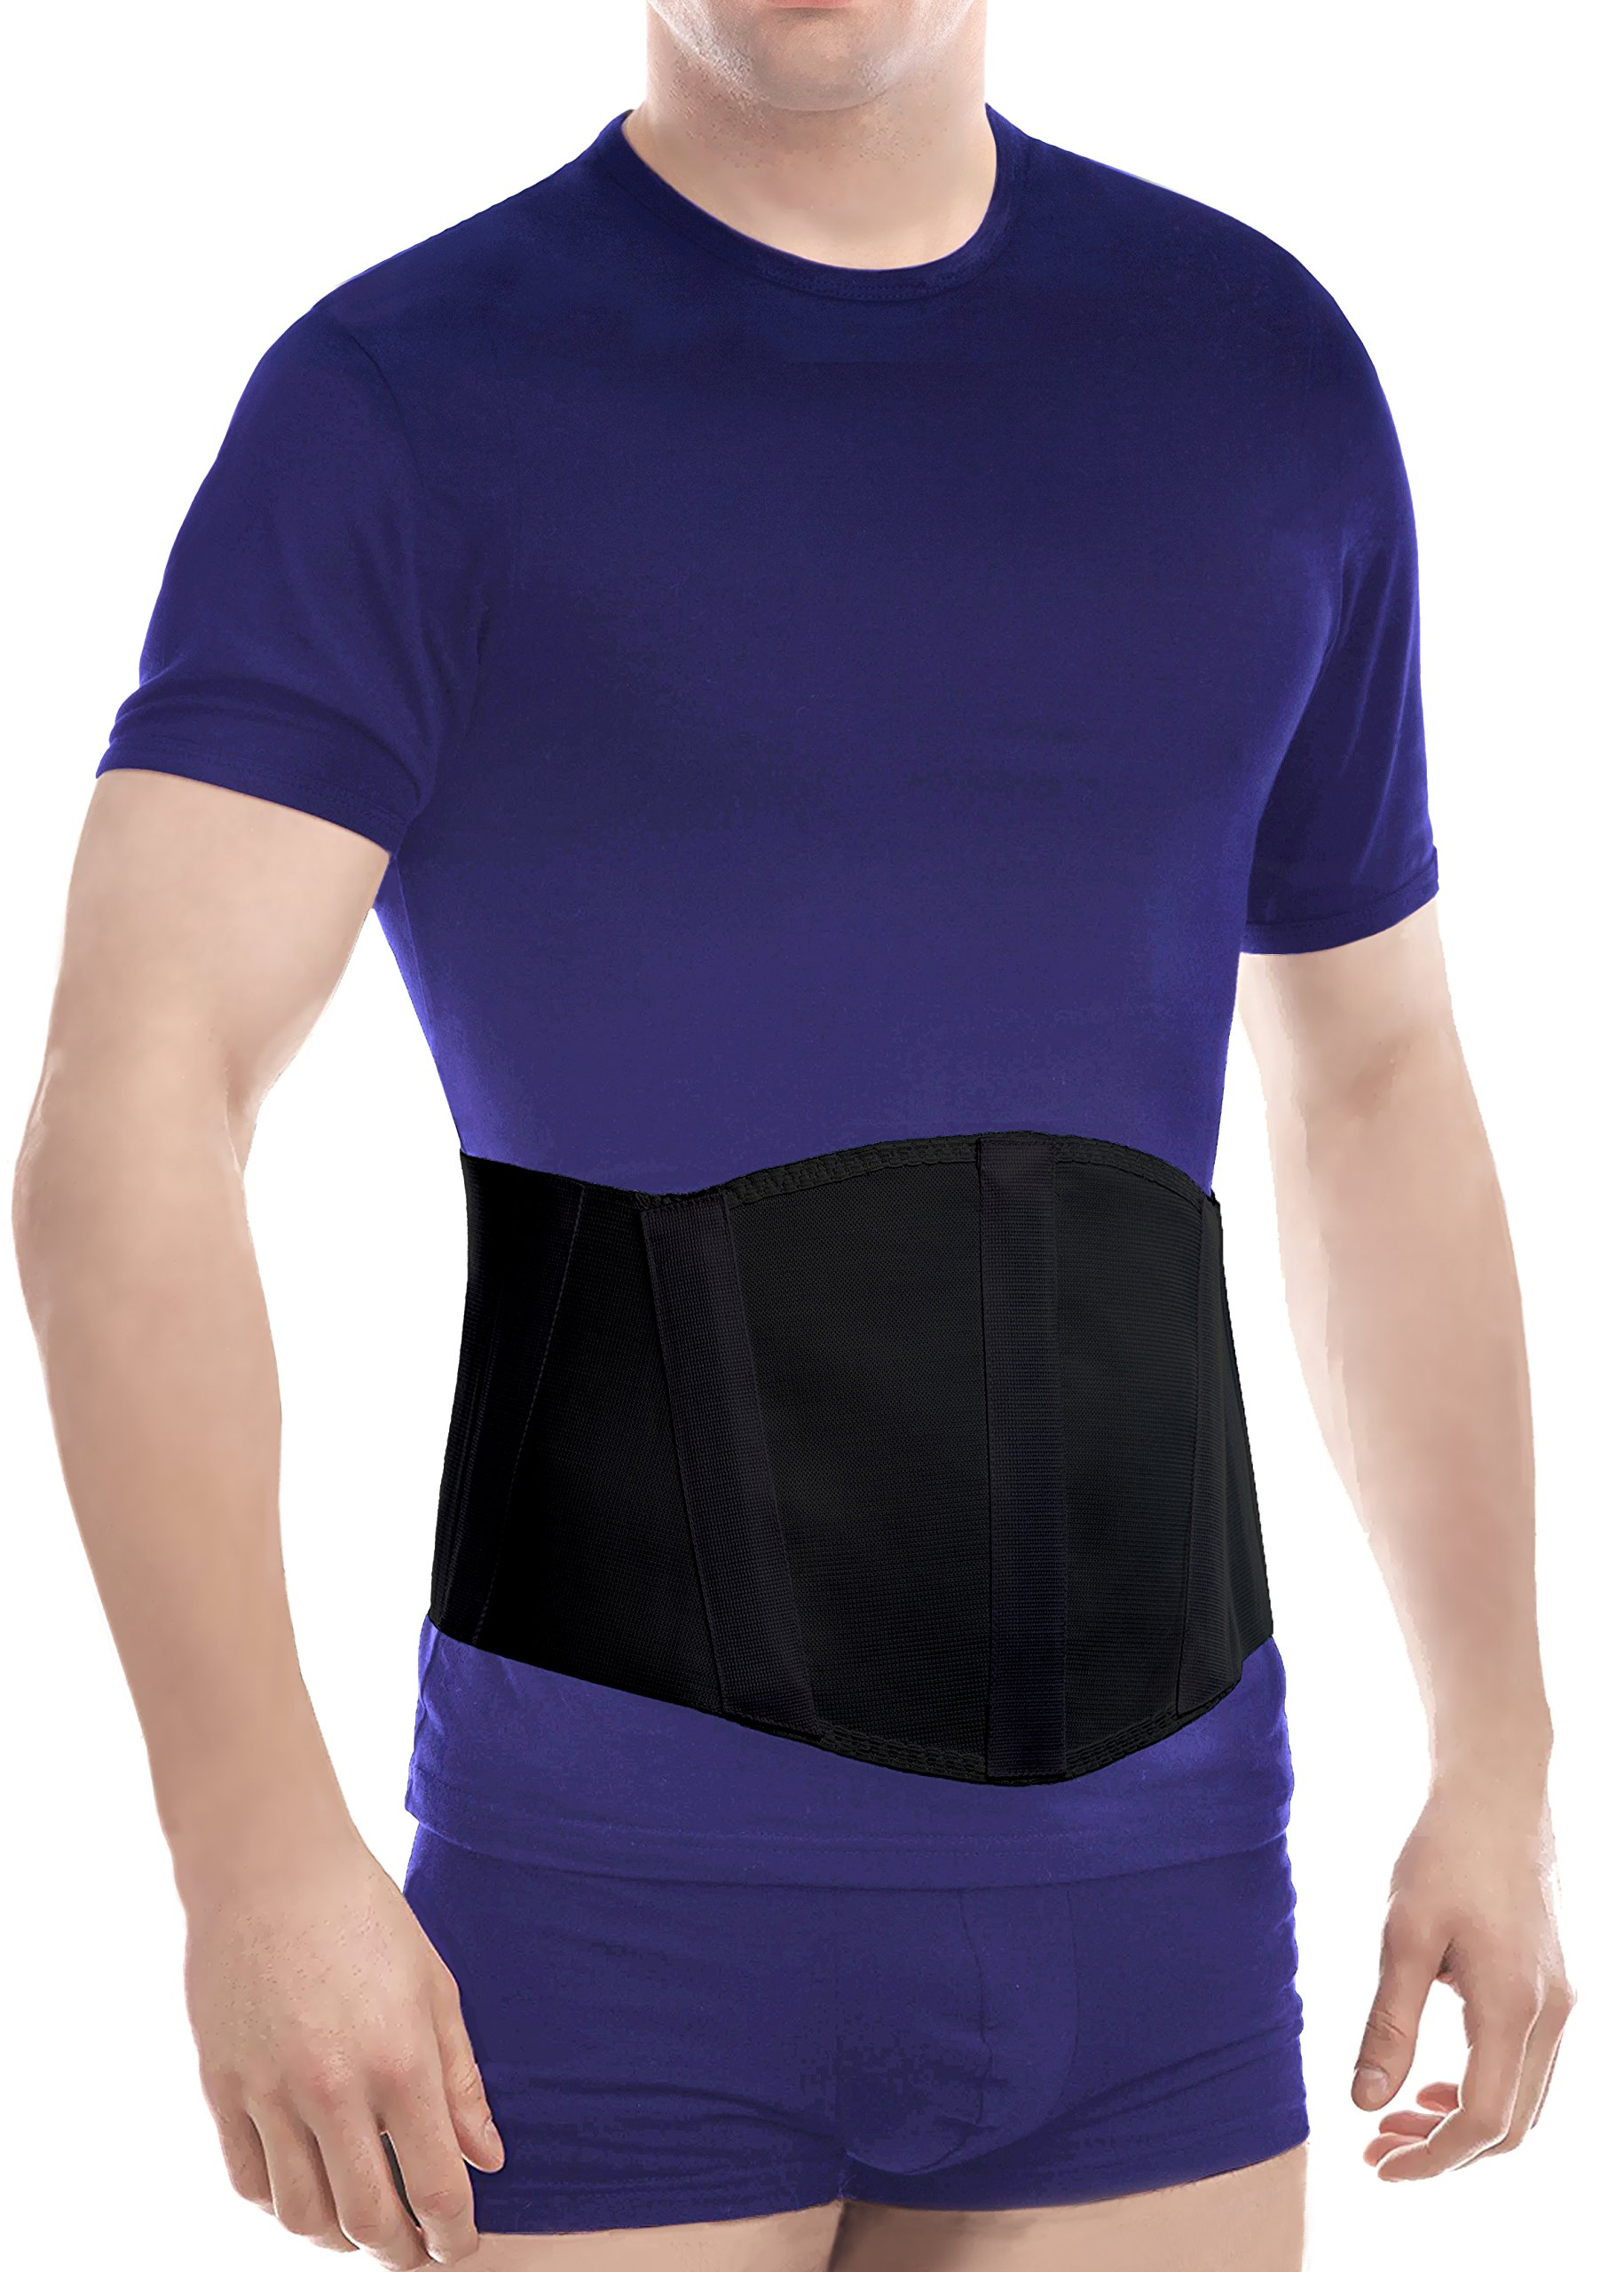 Abdominal Hernia Support Belt The Best Natural Treatment Without Surgery